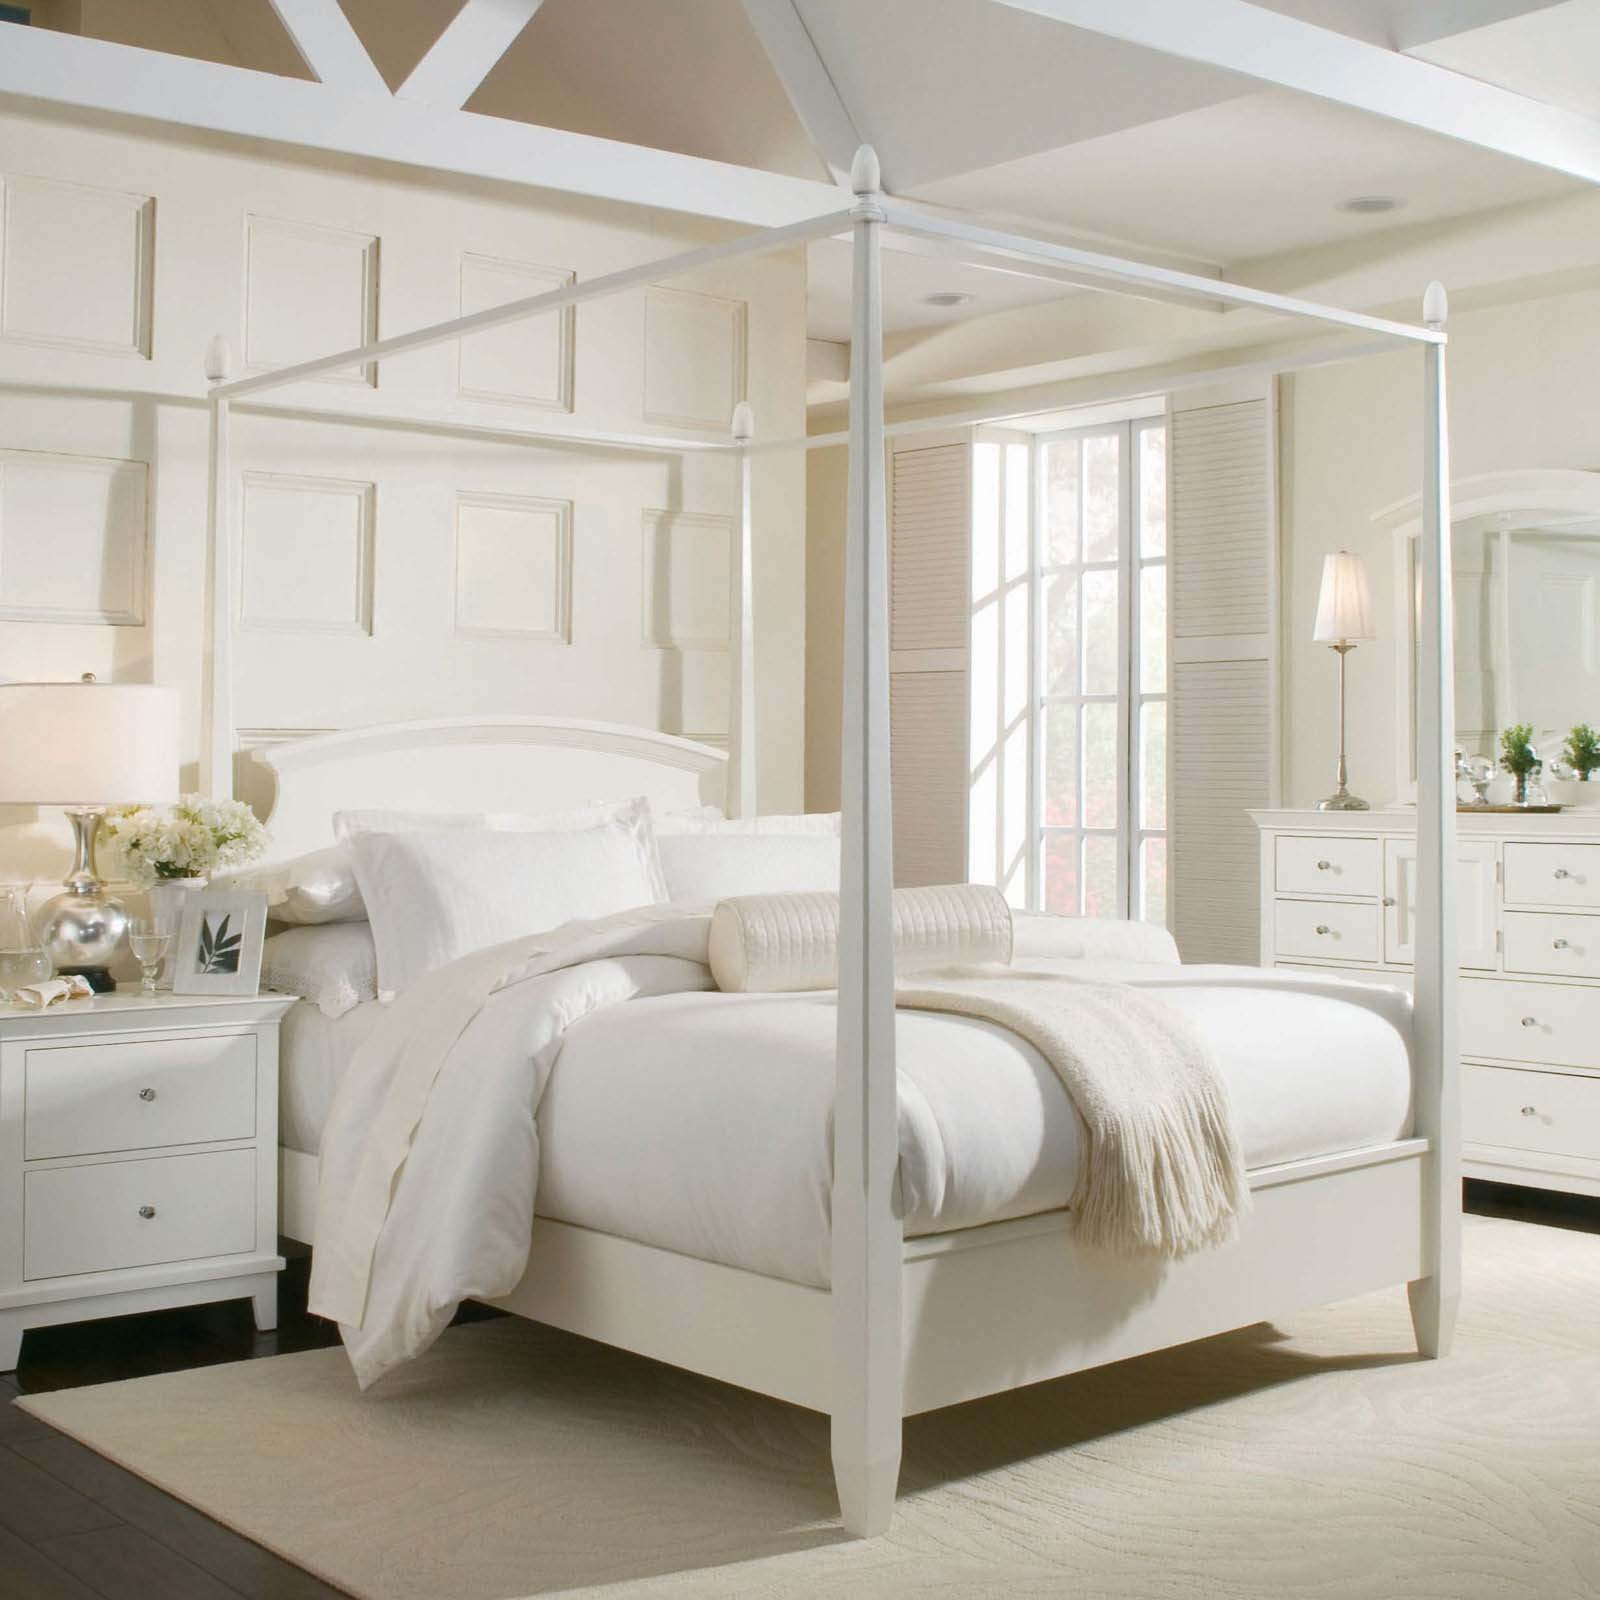 Attractive Bedroom Decor Using Modern Canopy Bed also Table L& On Dresser & Modern Canopy Bed Ideas and Buying Tips - MidCityEast